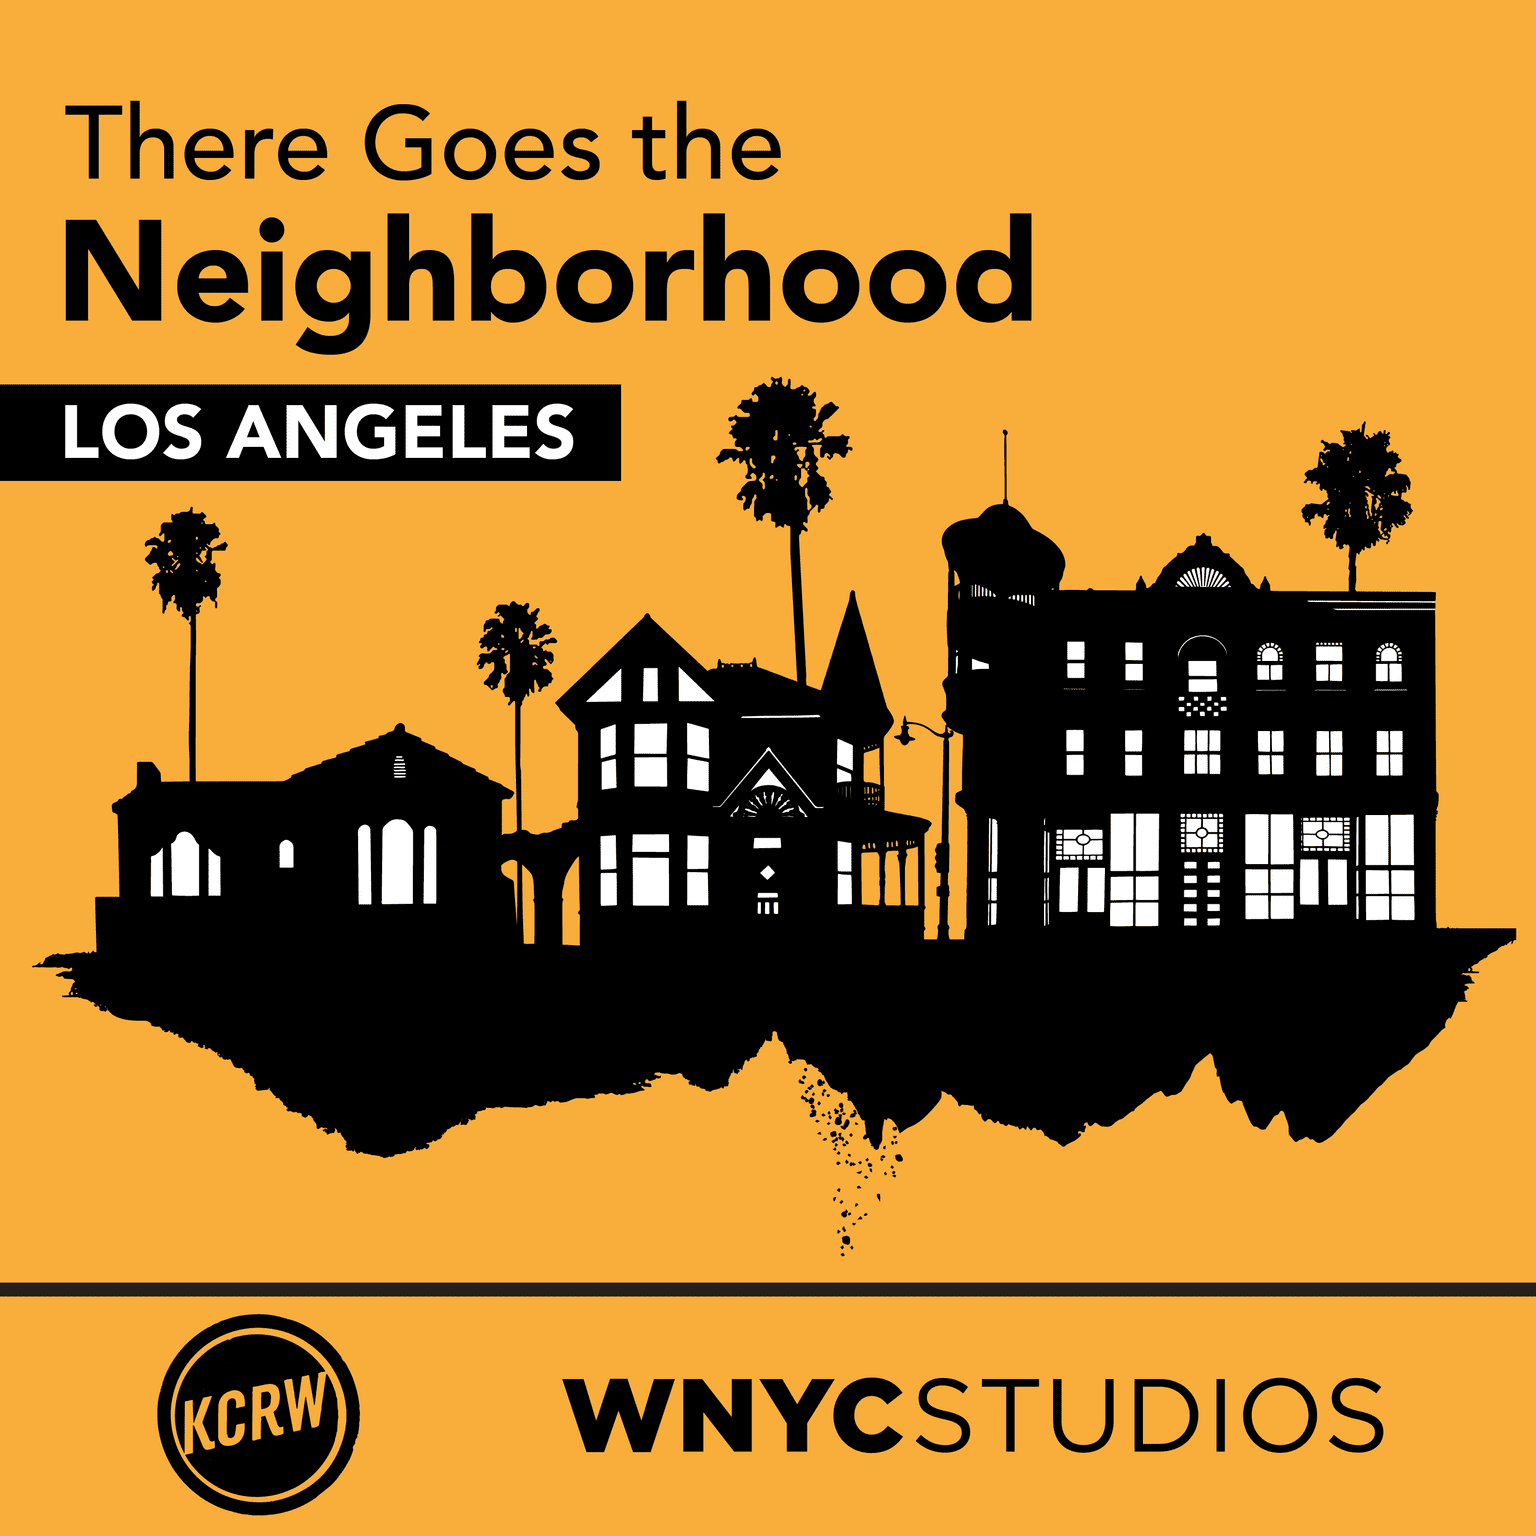 There goes the Neighbourhood - An in-depth look at gentrification in L.A. (Season 2) and Brooklyn (Season 1).